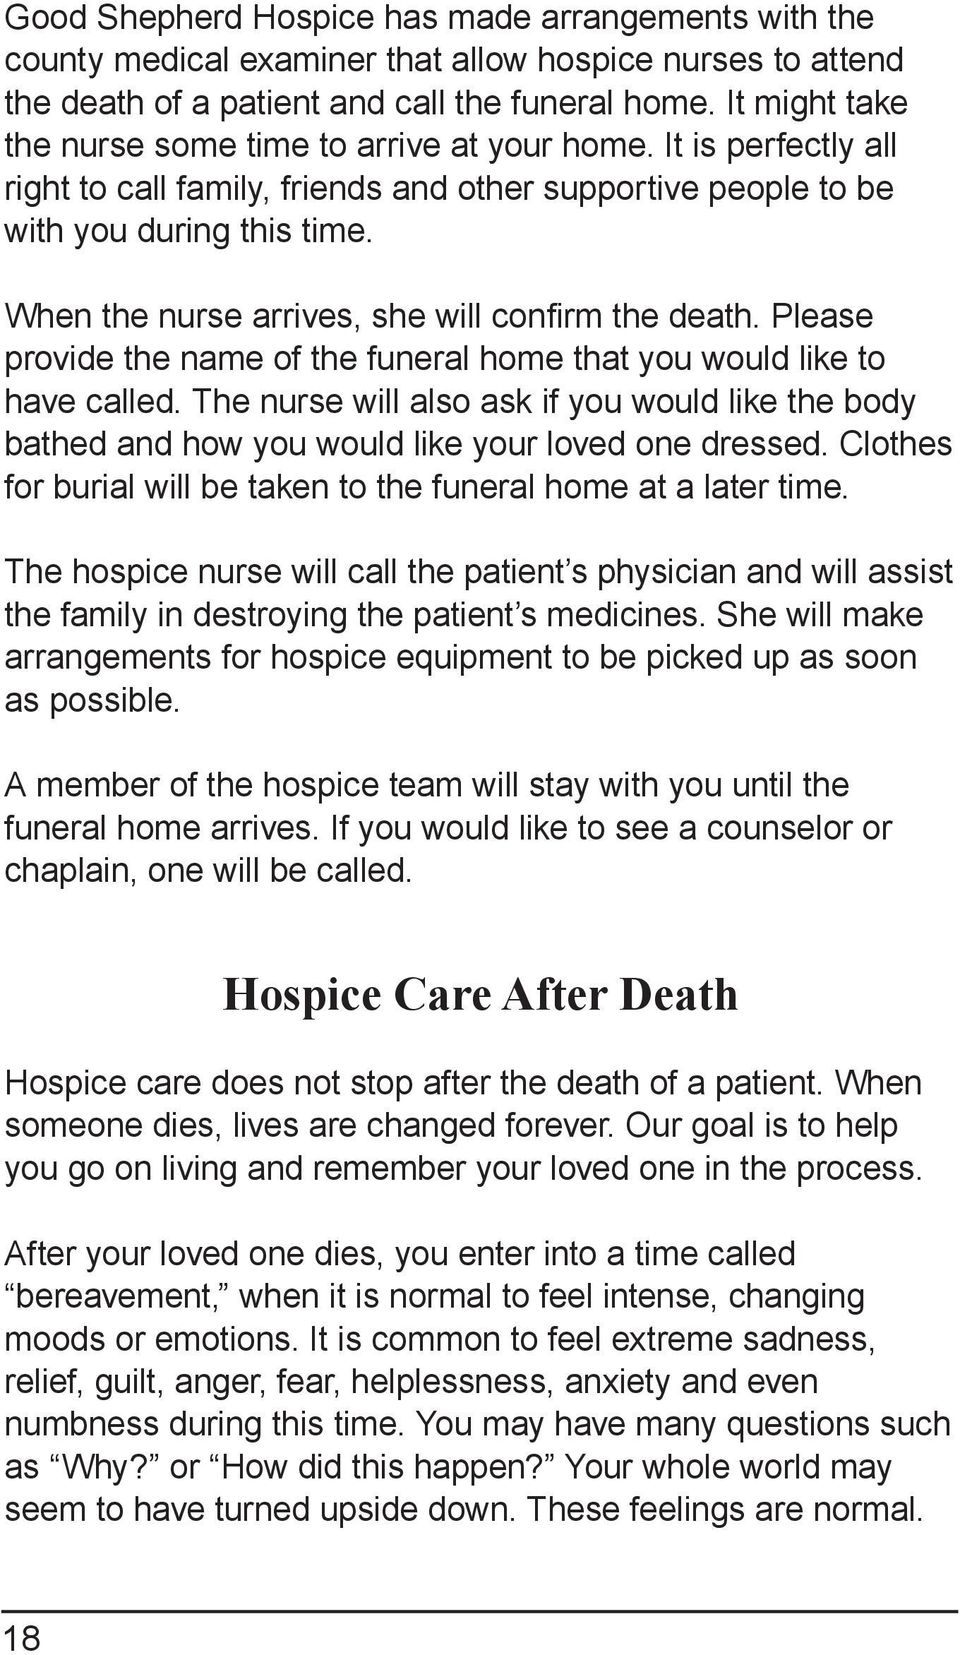 When the nurse arrives, she will confirm the death. Please provide the name of the funeral home that you would like to have called.